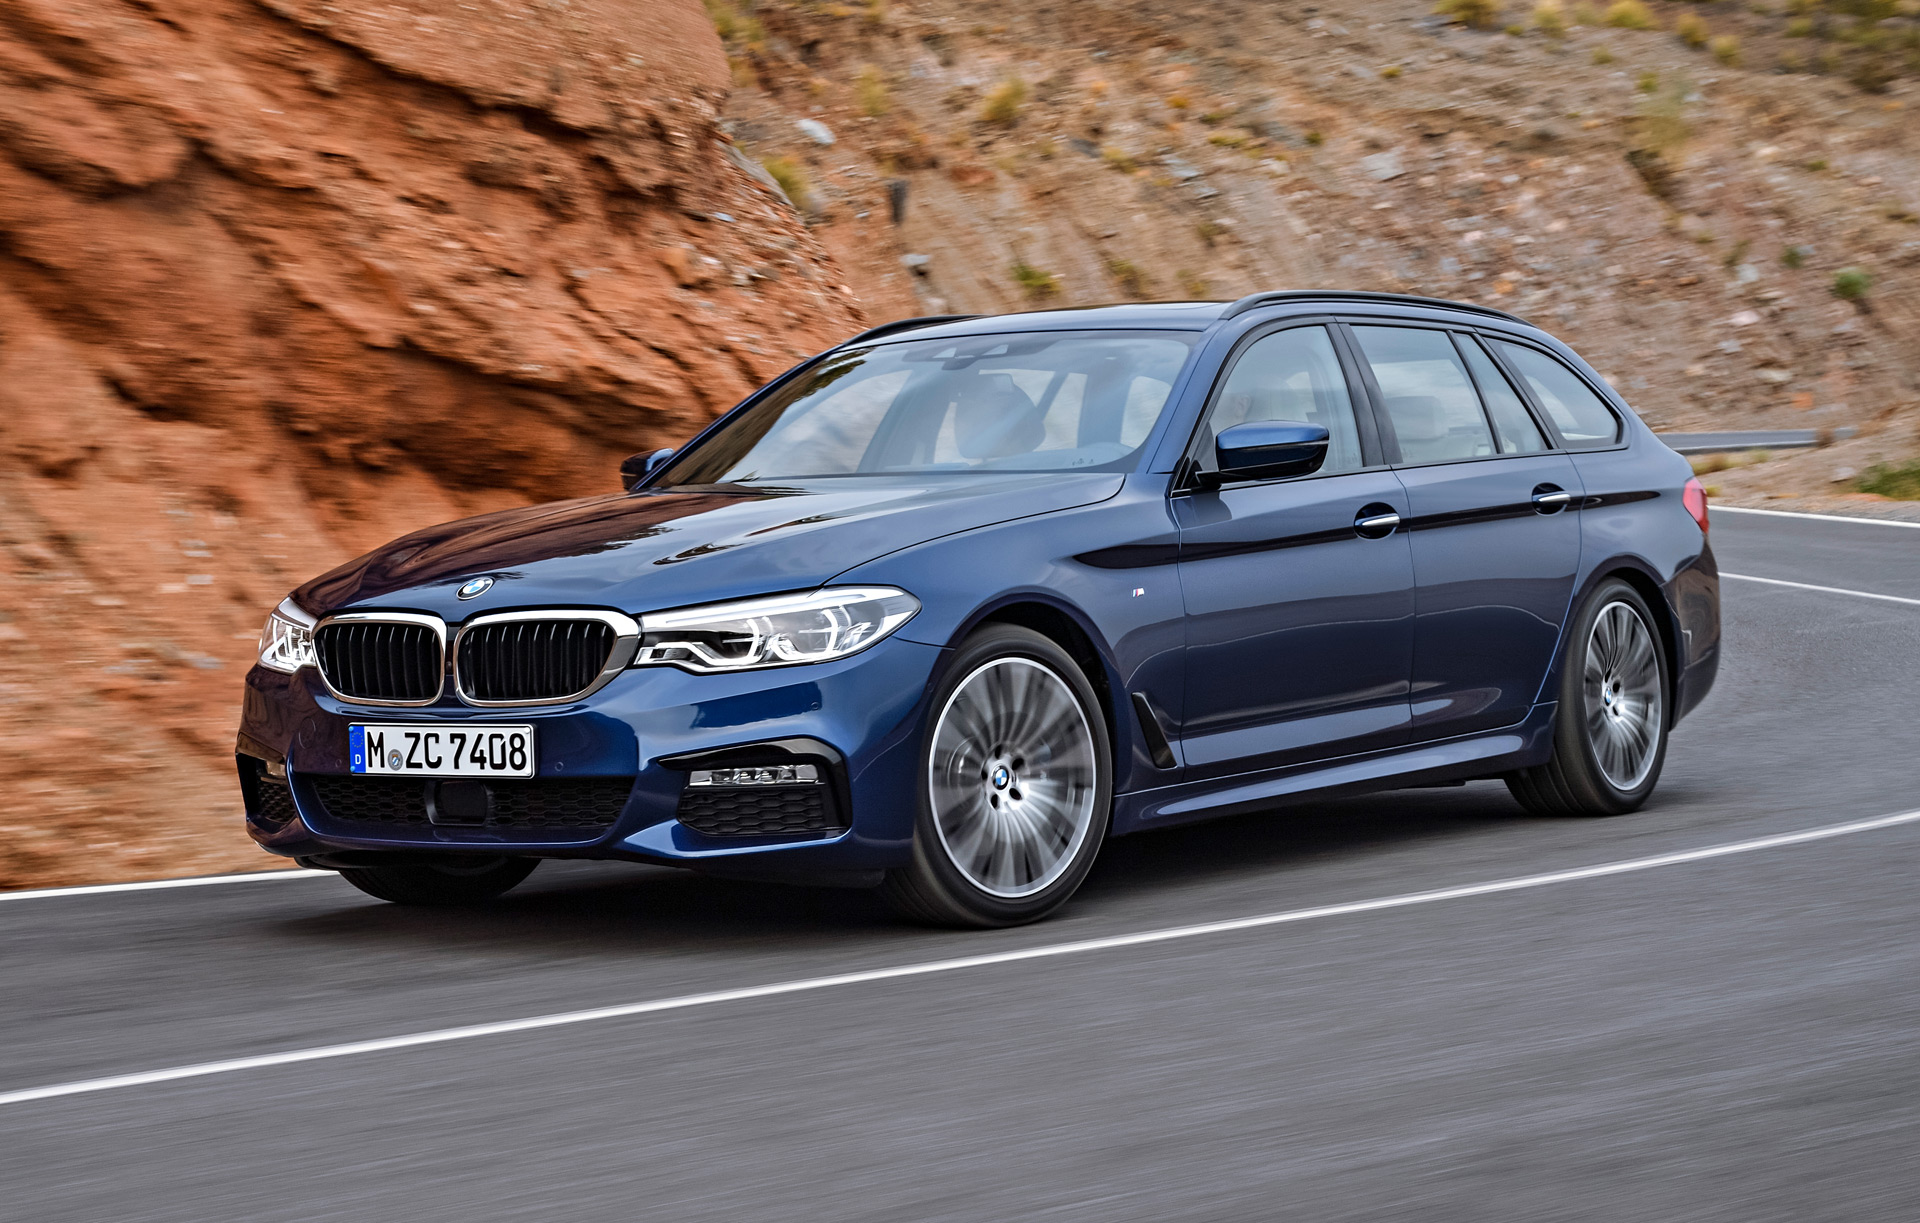 2017 bmw 5 series touring revealed ahead of geneva debut. Black Bedroom Furniture Sets. Home Design Ideas